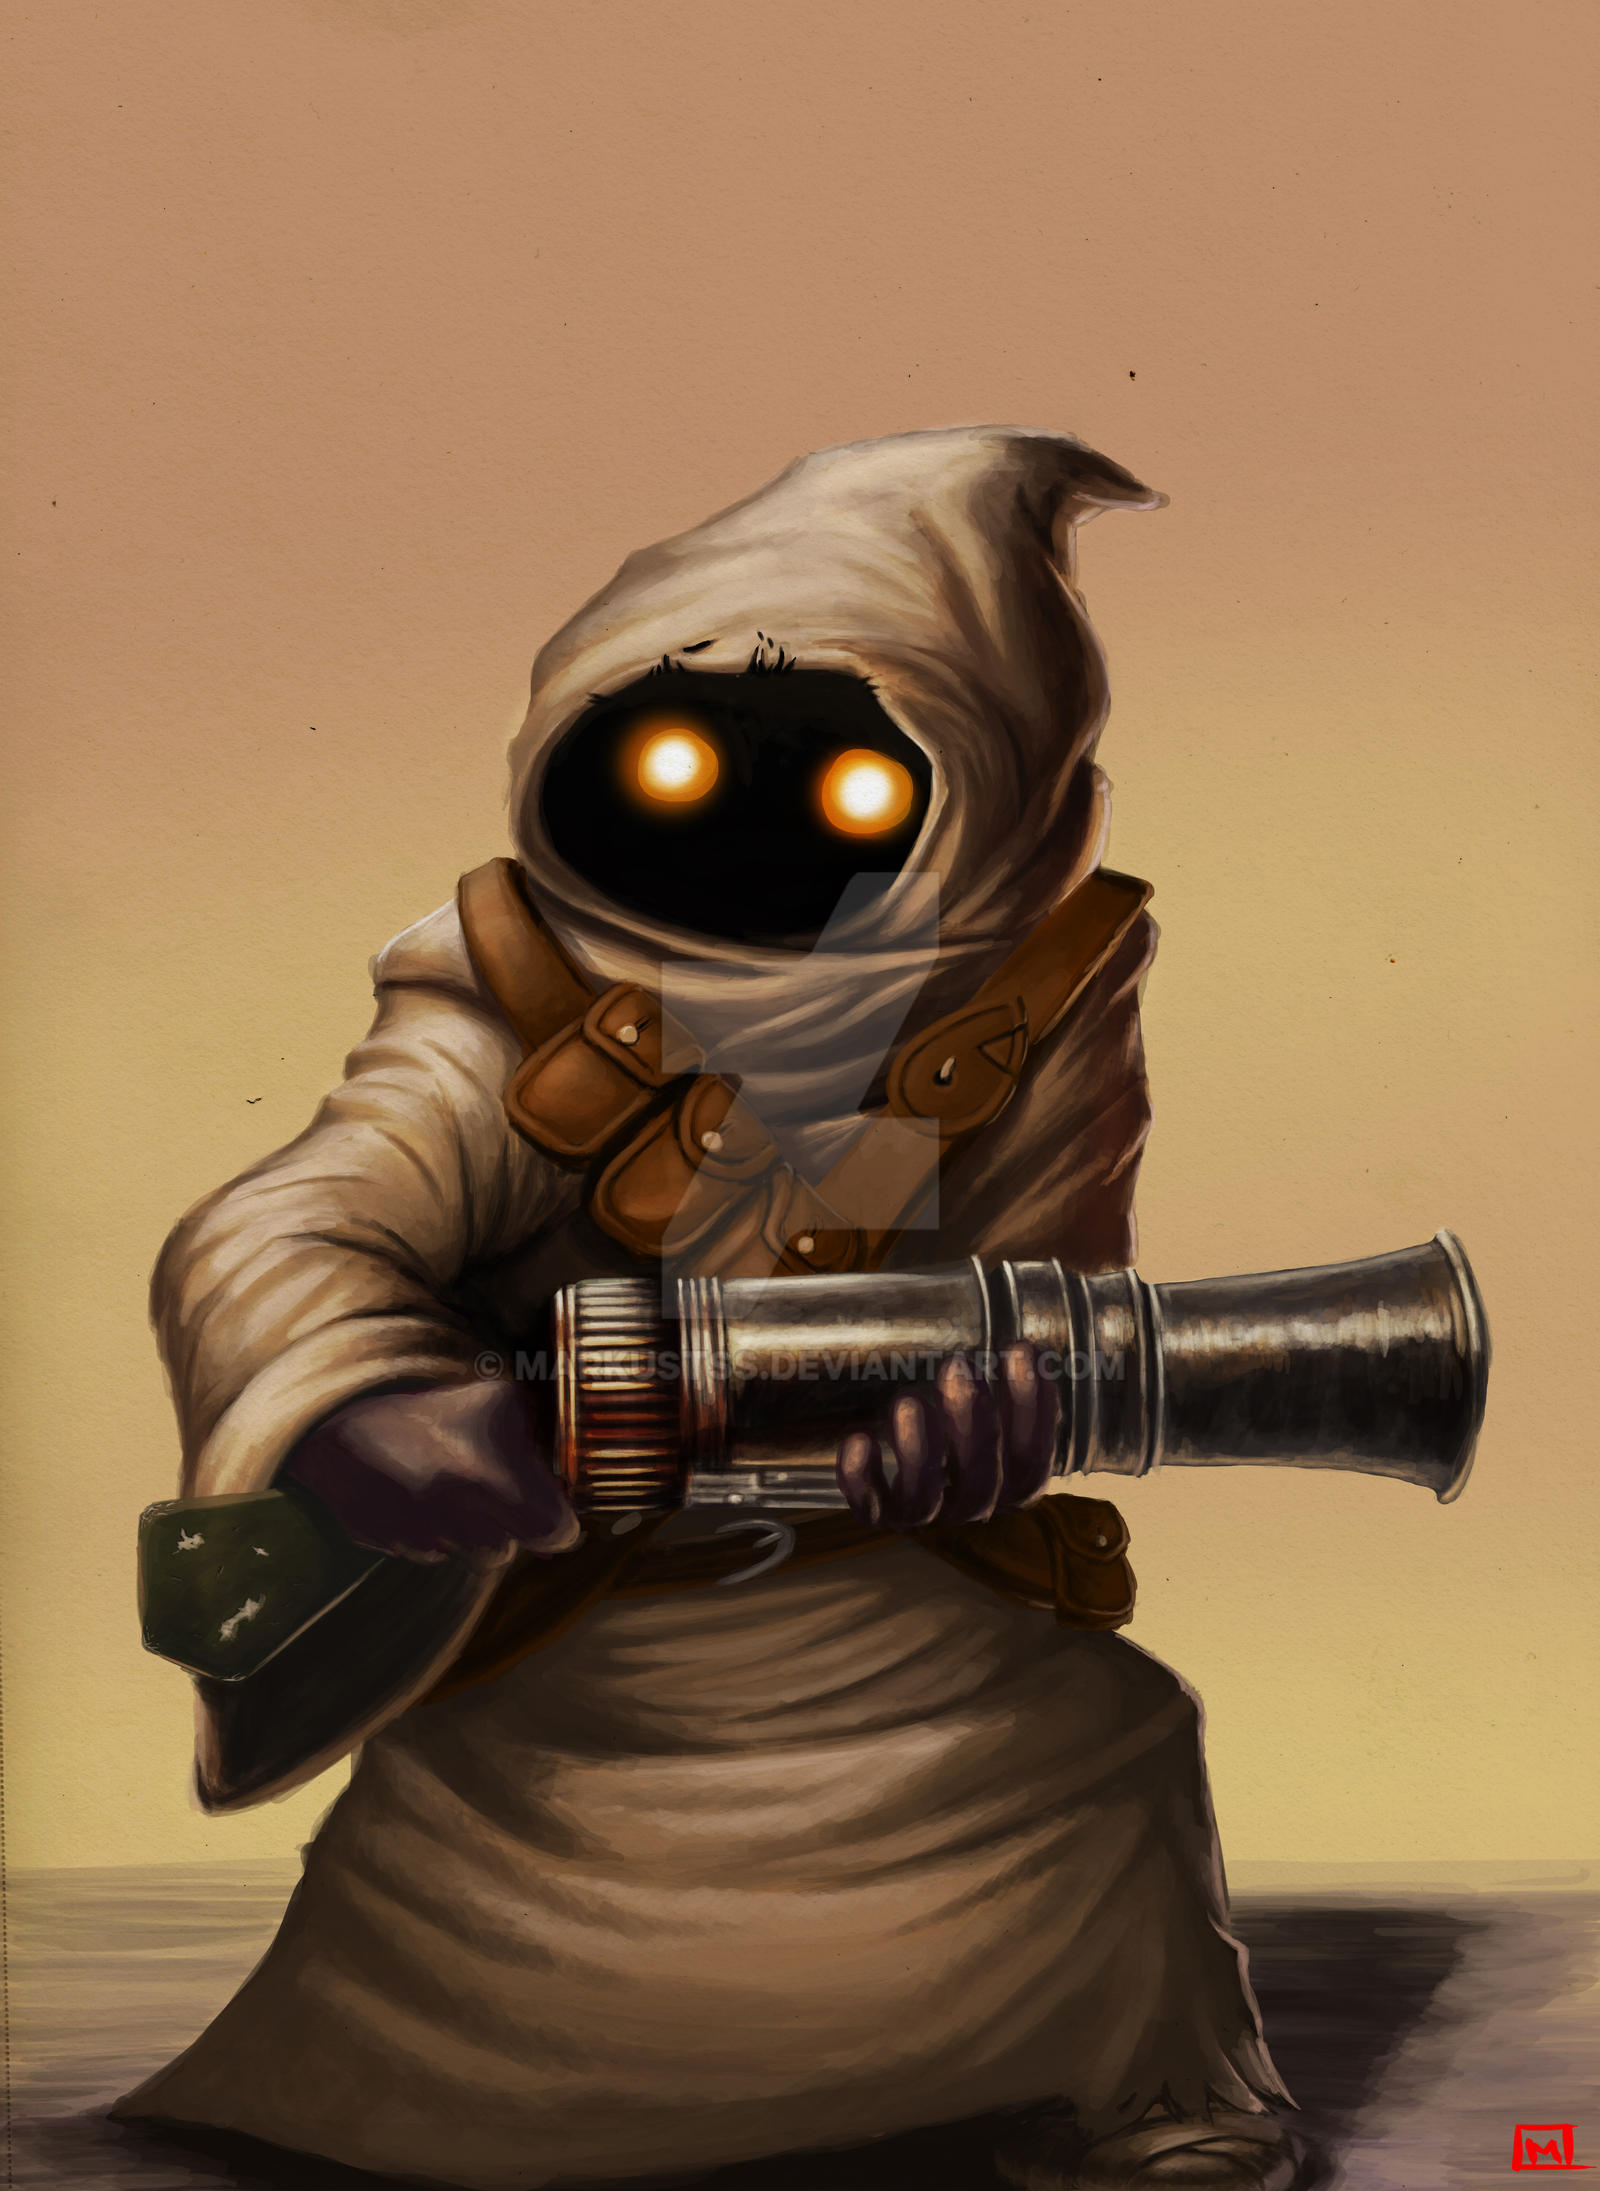 Jawa by MarkusTSS on DeviantArt